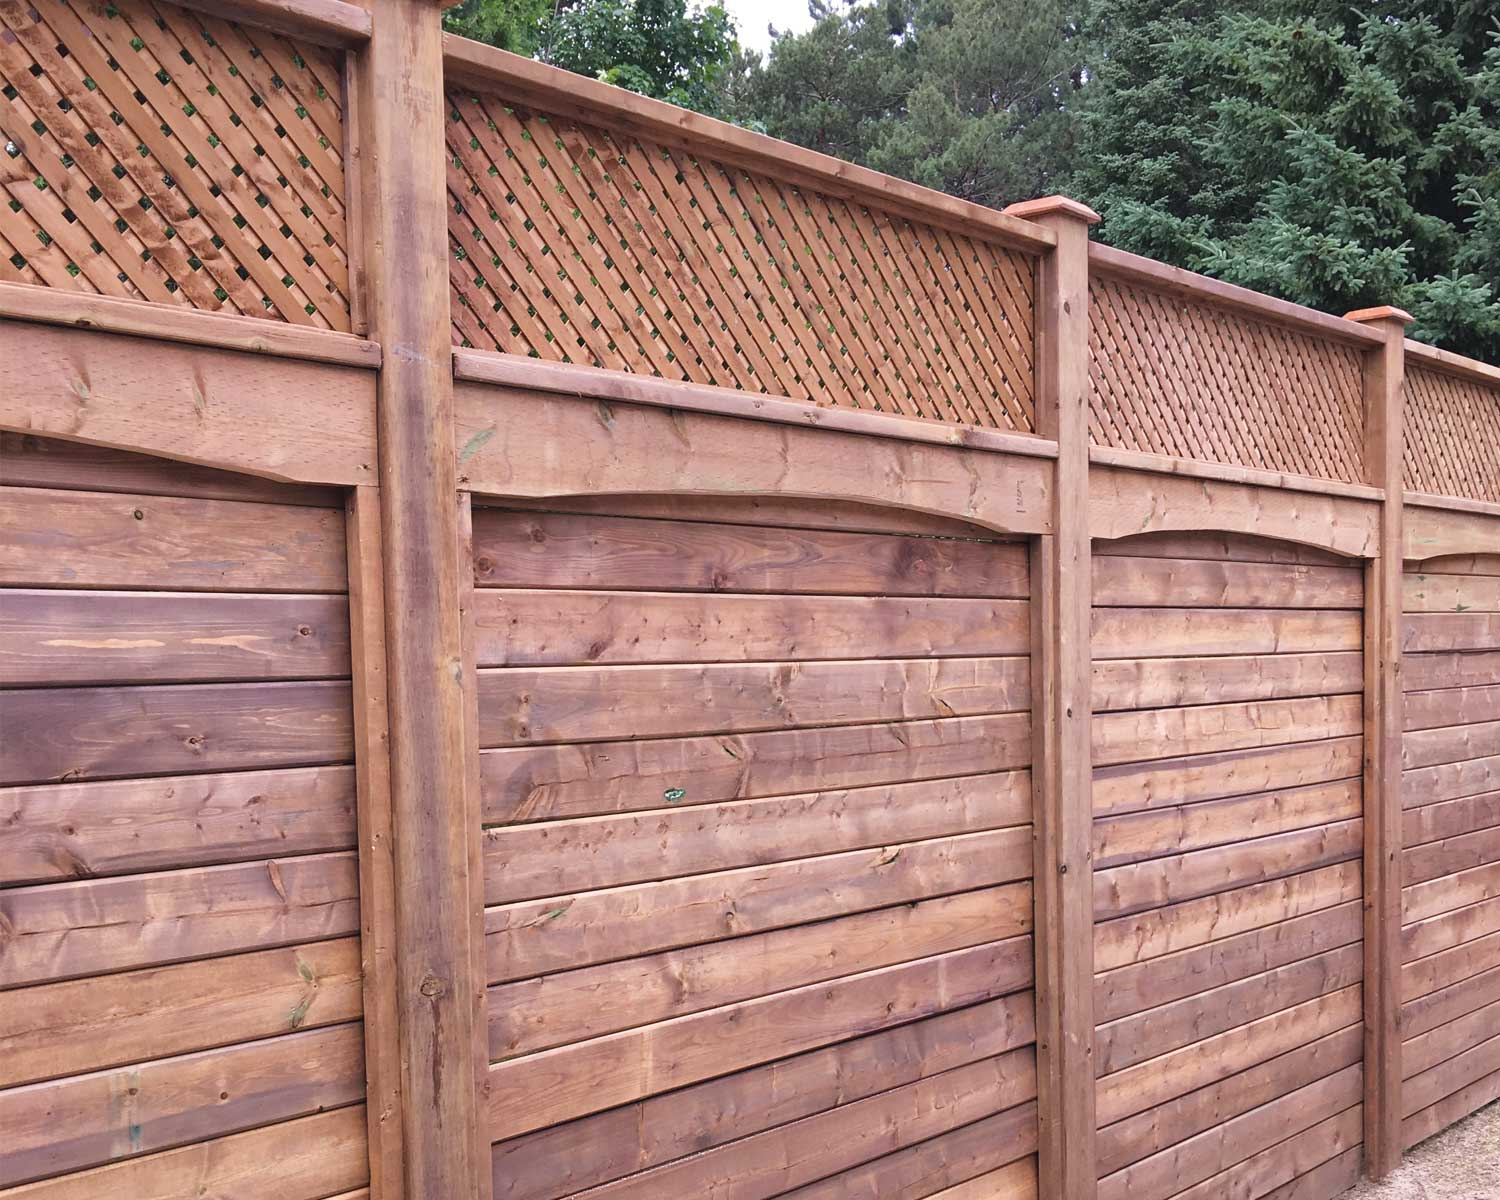 Commercial Fence Building Kitchener Citywide Property